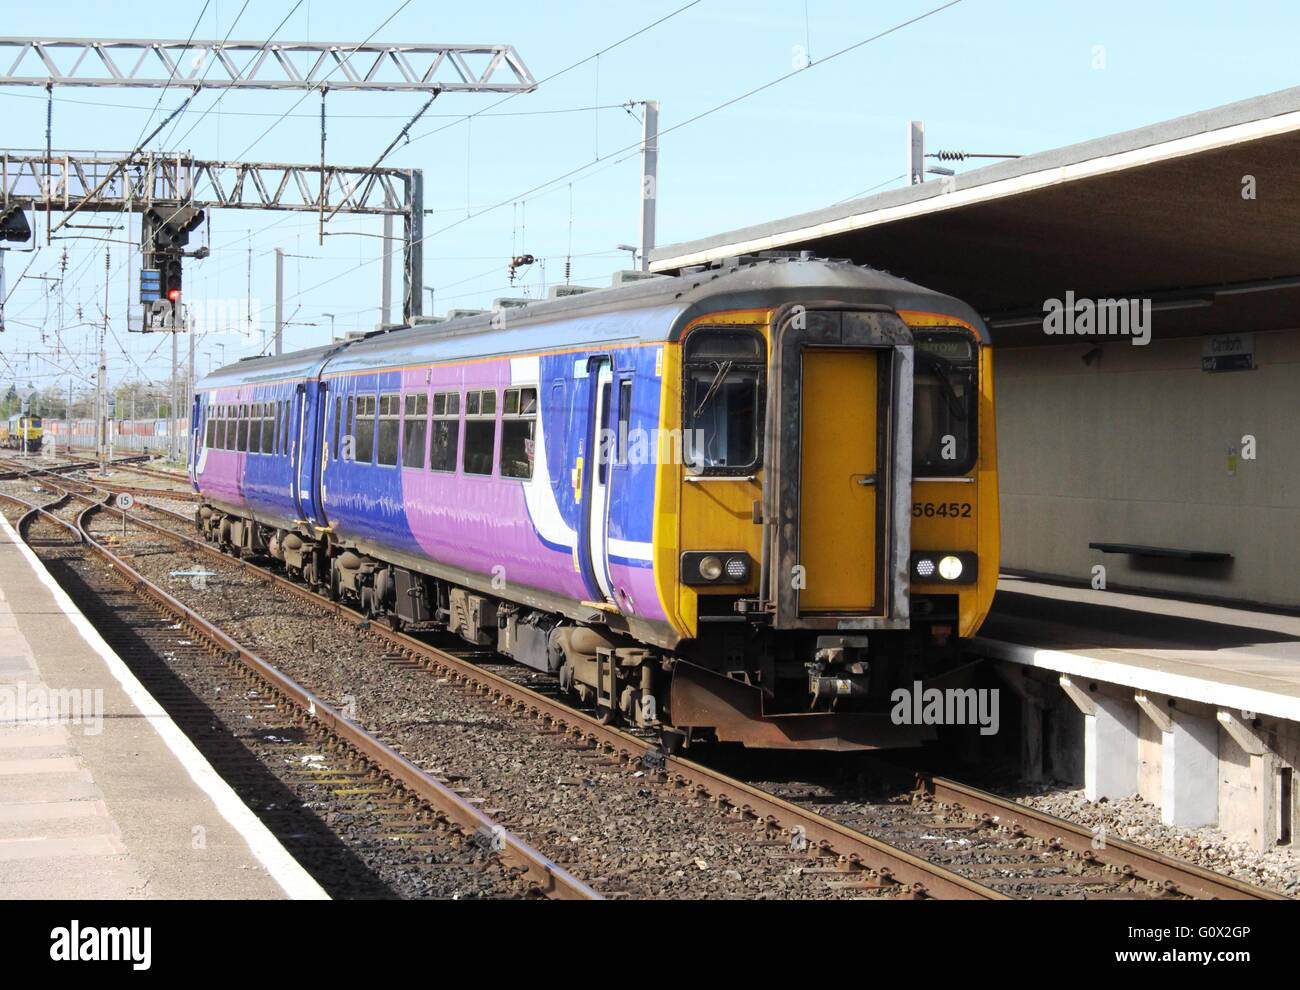 Class 156 diesel multiple unit 156452, in Northern livery without the Northern branding arriving at Carnforth station. - Stock Image